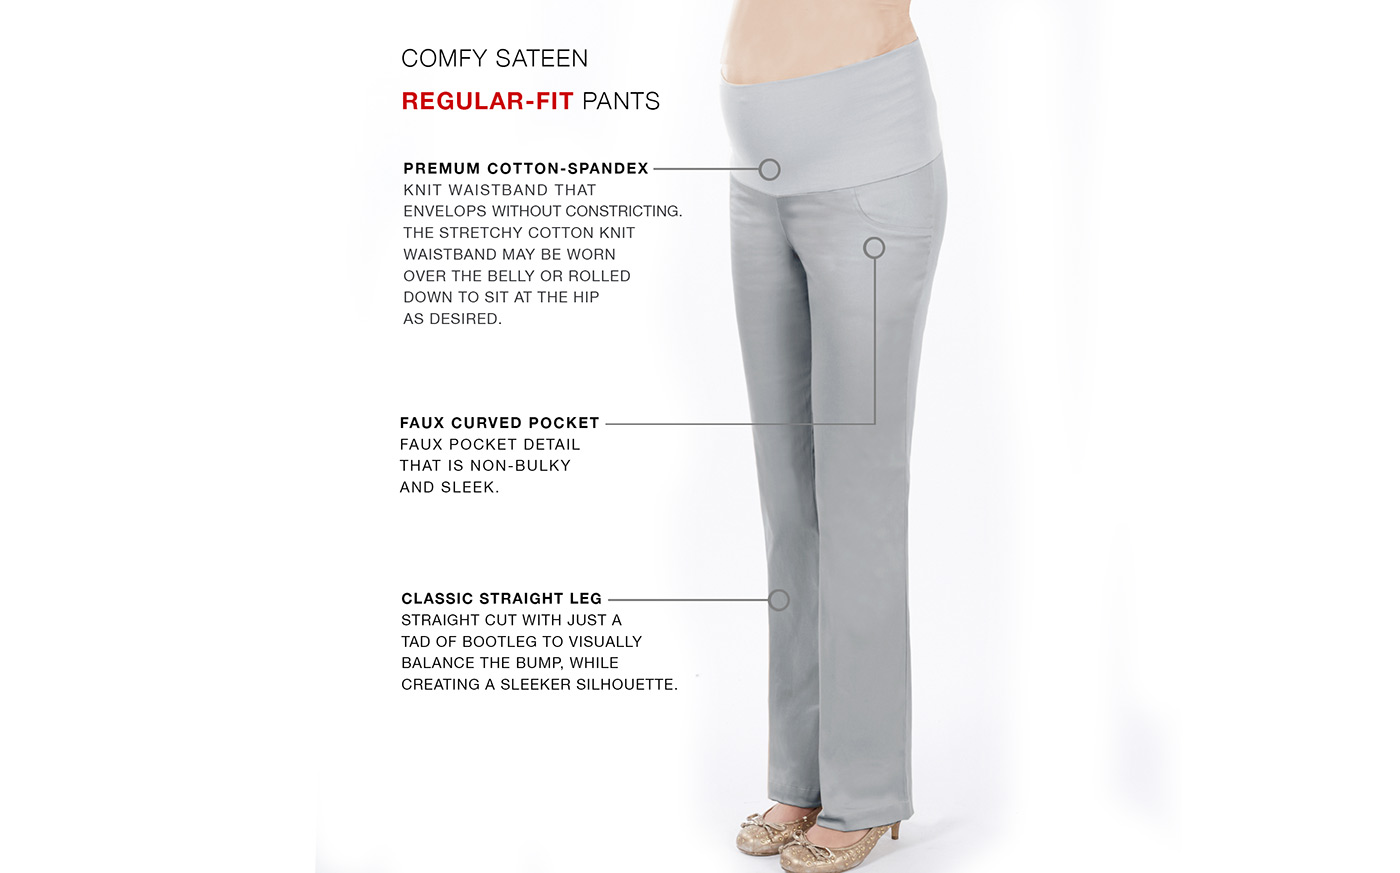 What to look for in a maternity pants - details.